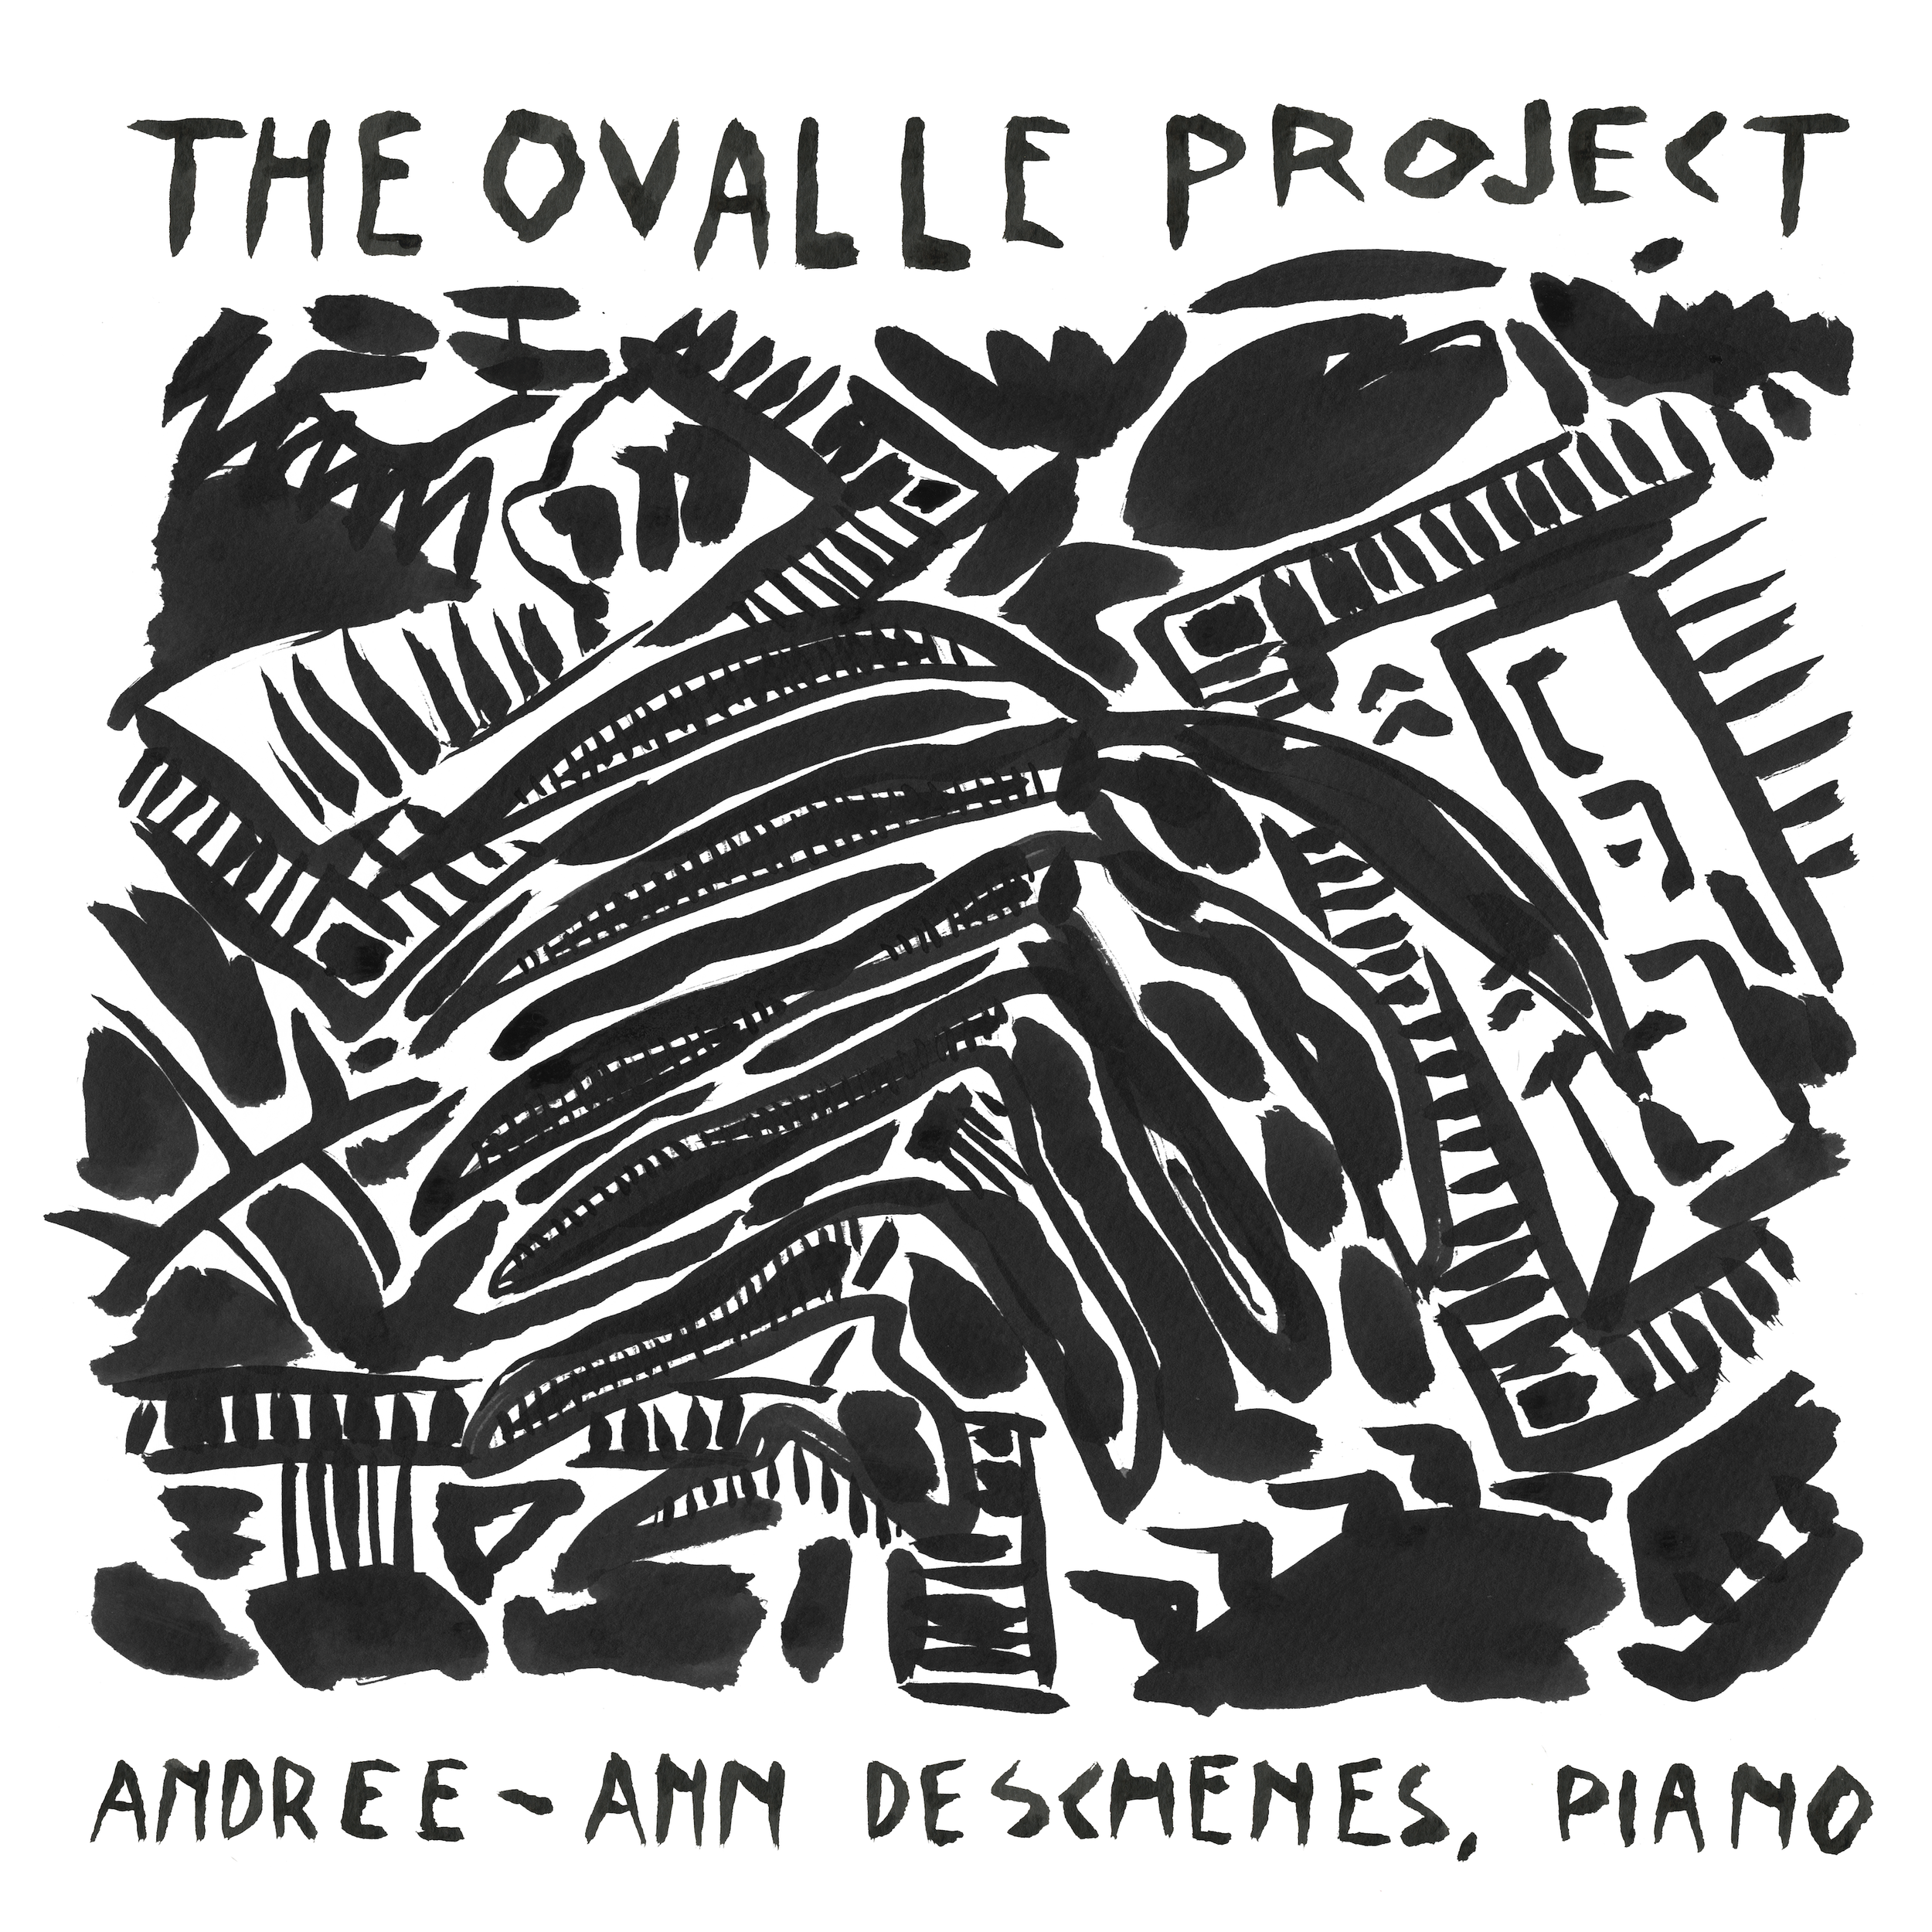 The Ovalle Project